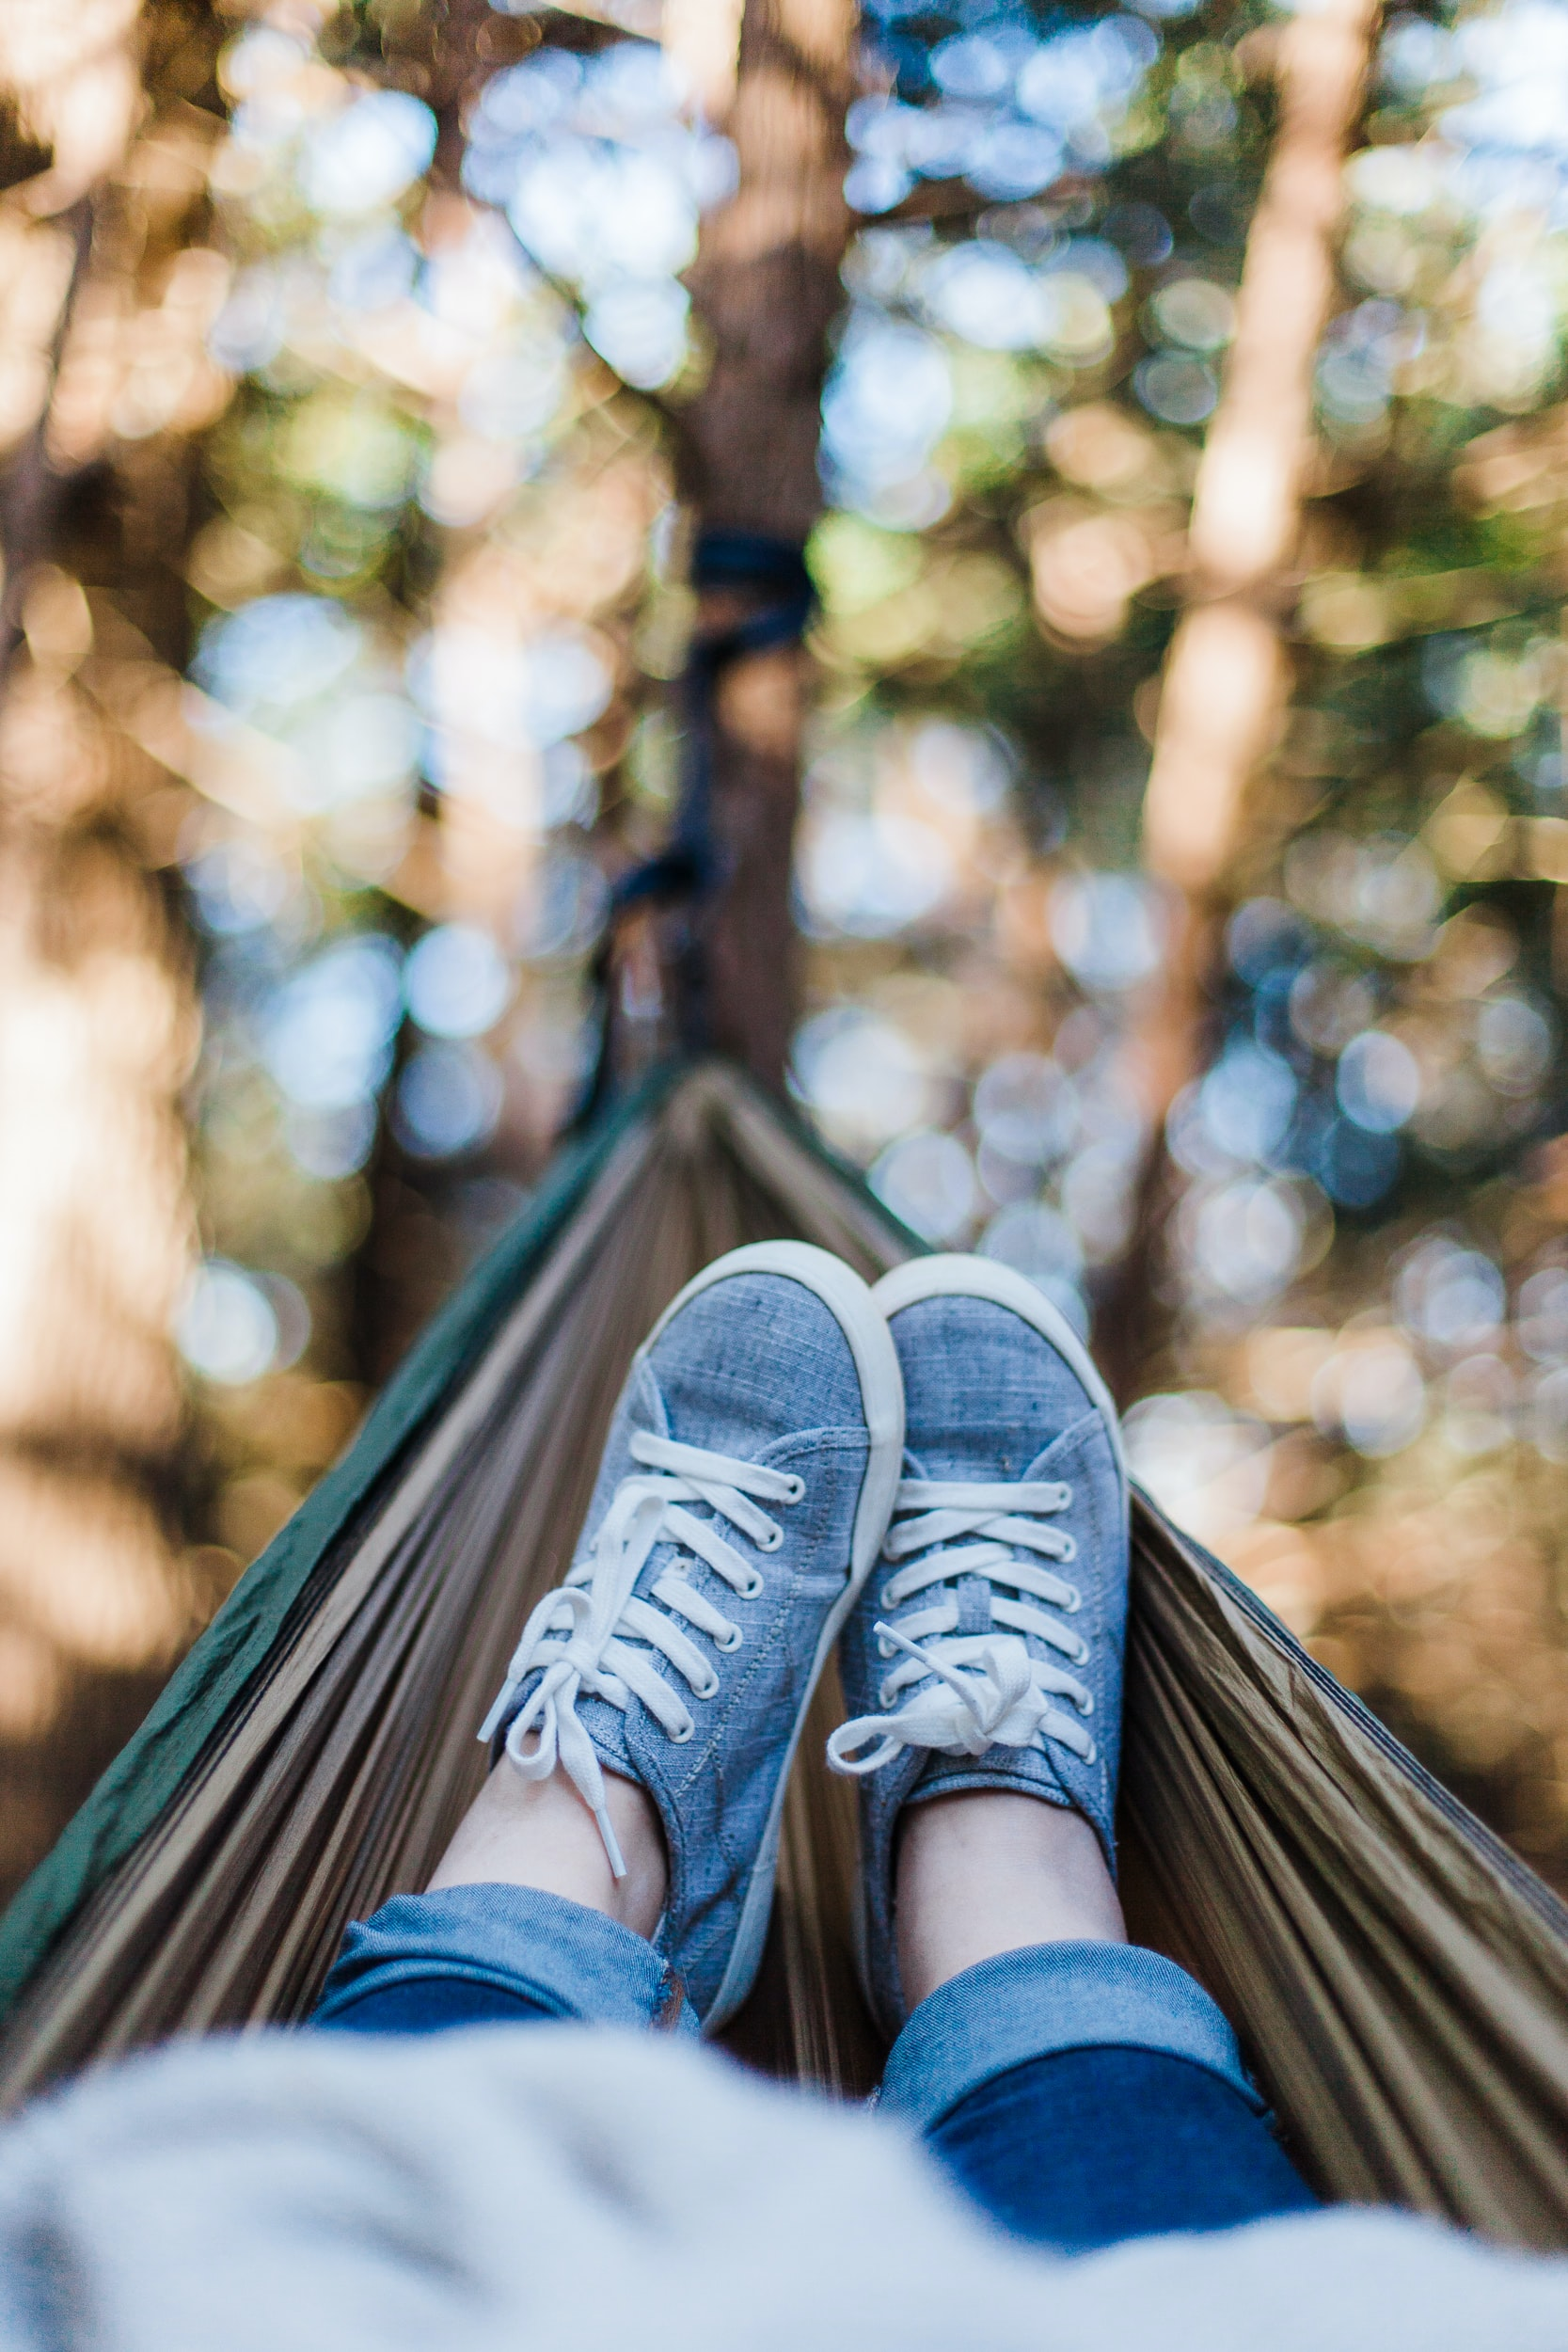 A pair of feet in relaxation mode at the end of hammock surrounded by trees.